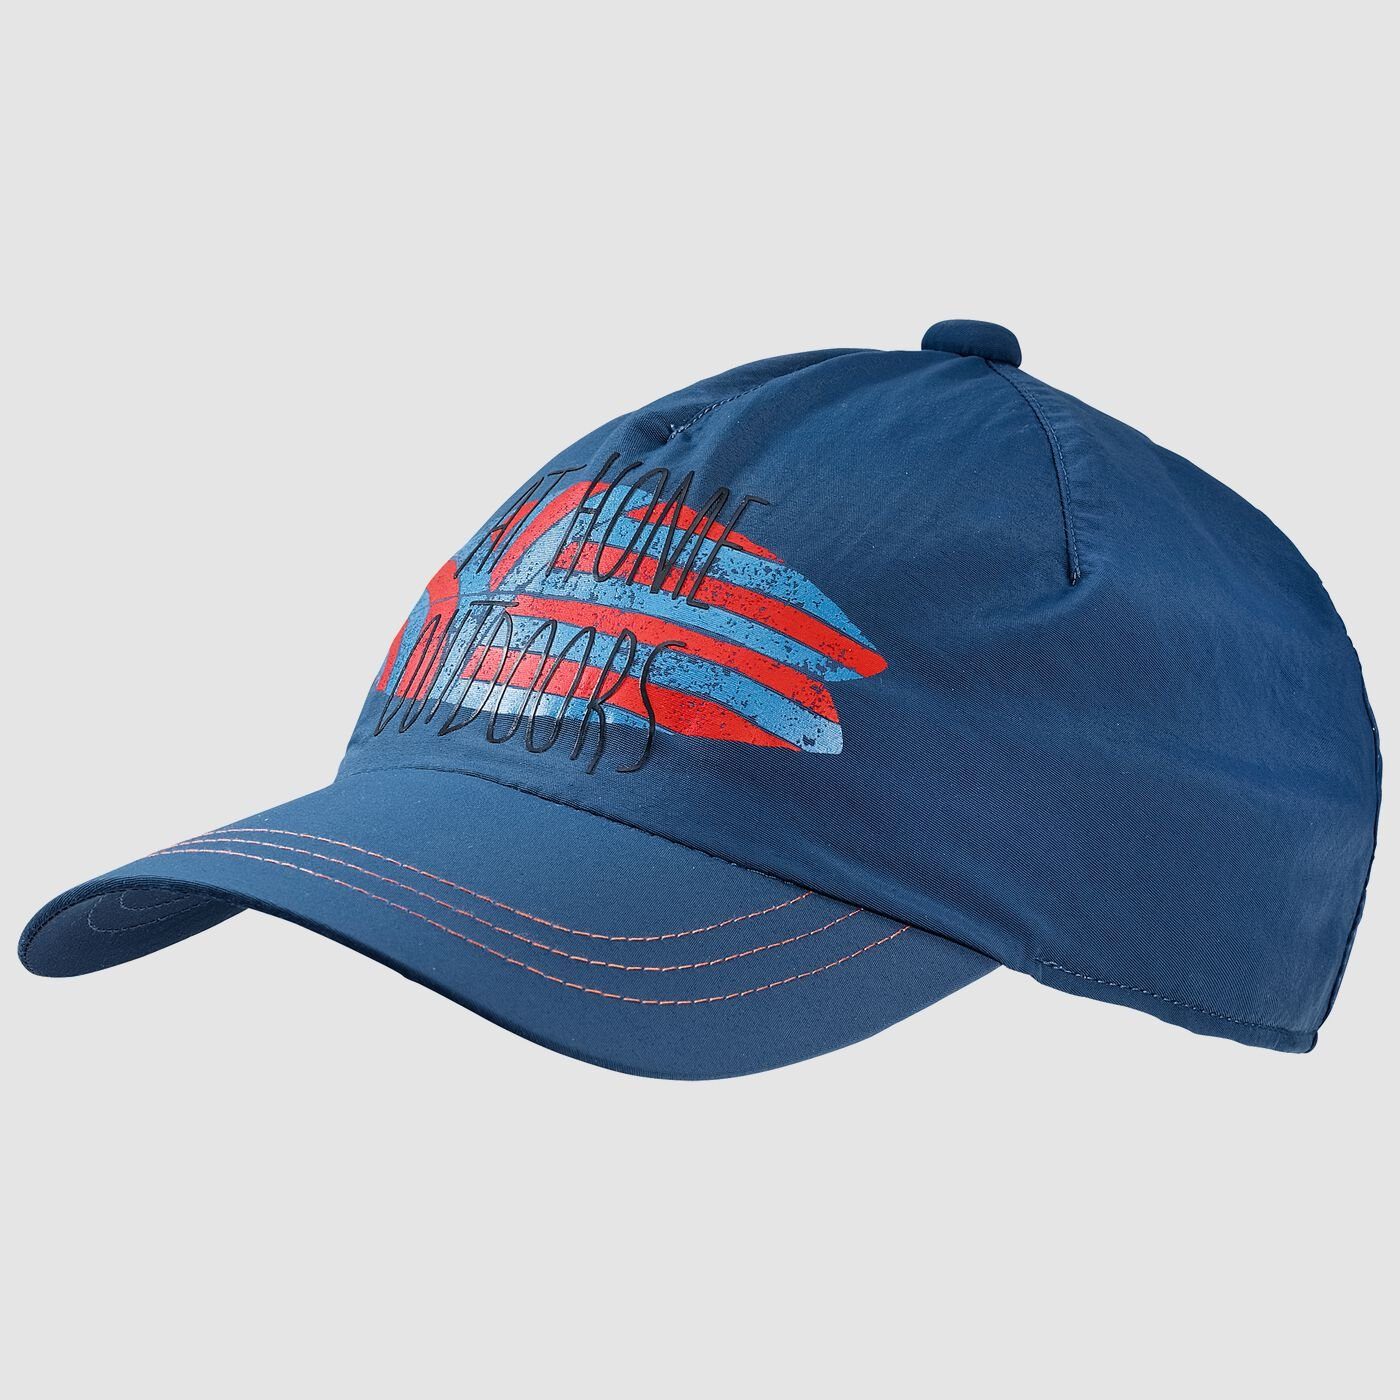 SUPPLEX SHORELINE CAP KIDS